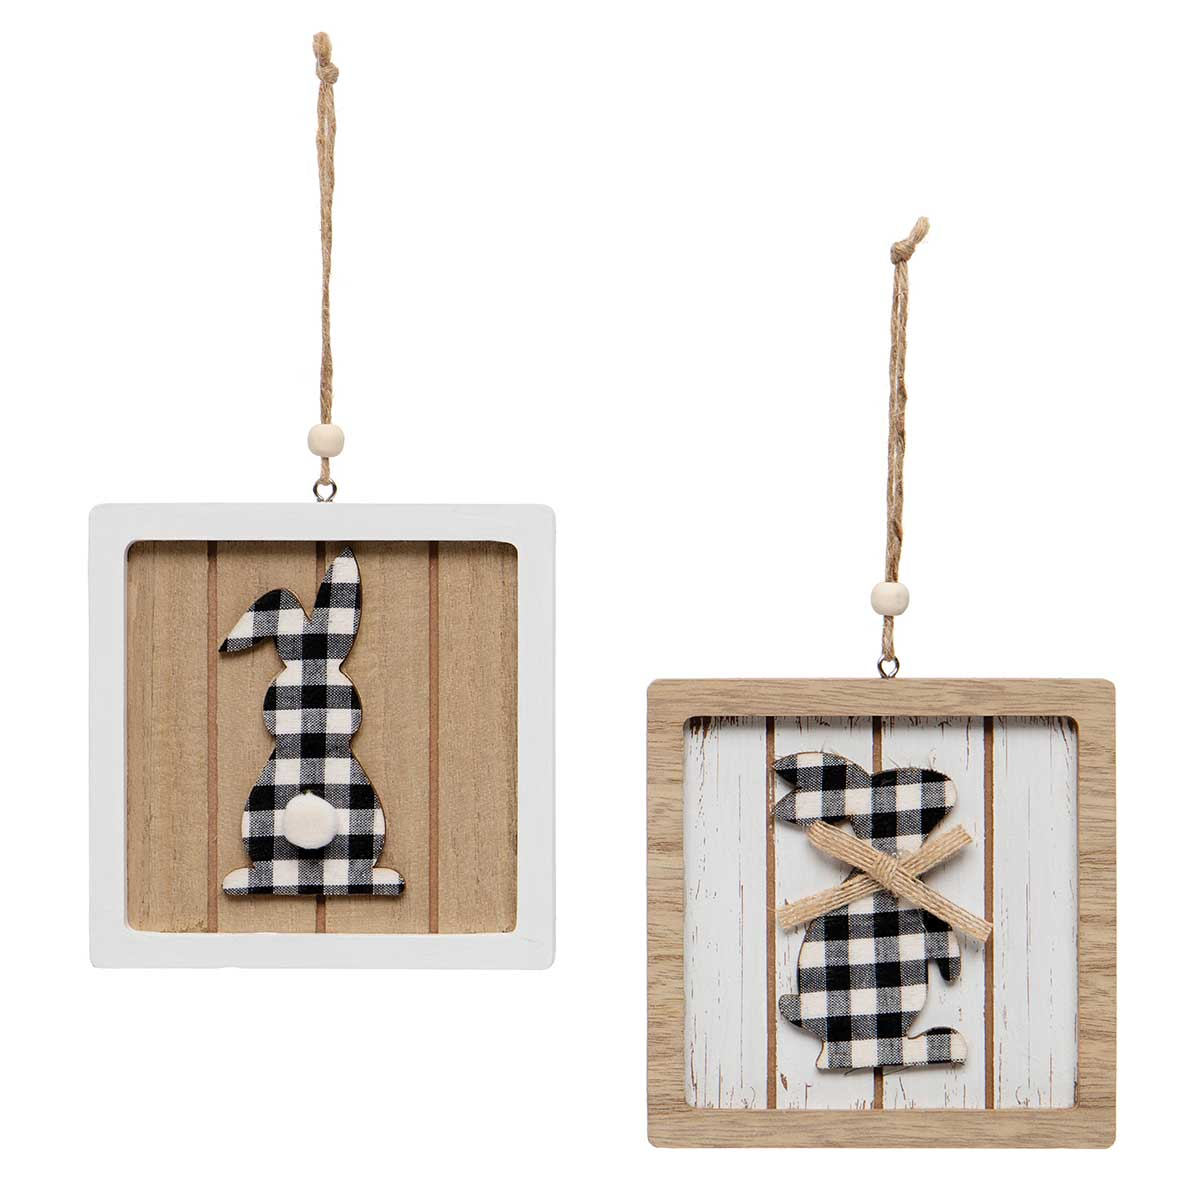 BUNNIES IN FRAME WOODEN SILHOUETTES BLACK/WHITE PLAID WITH TWINE